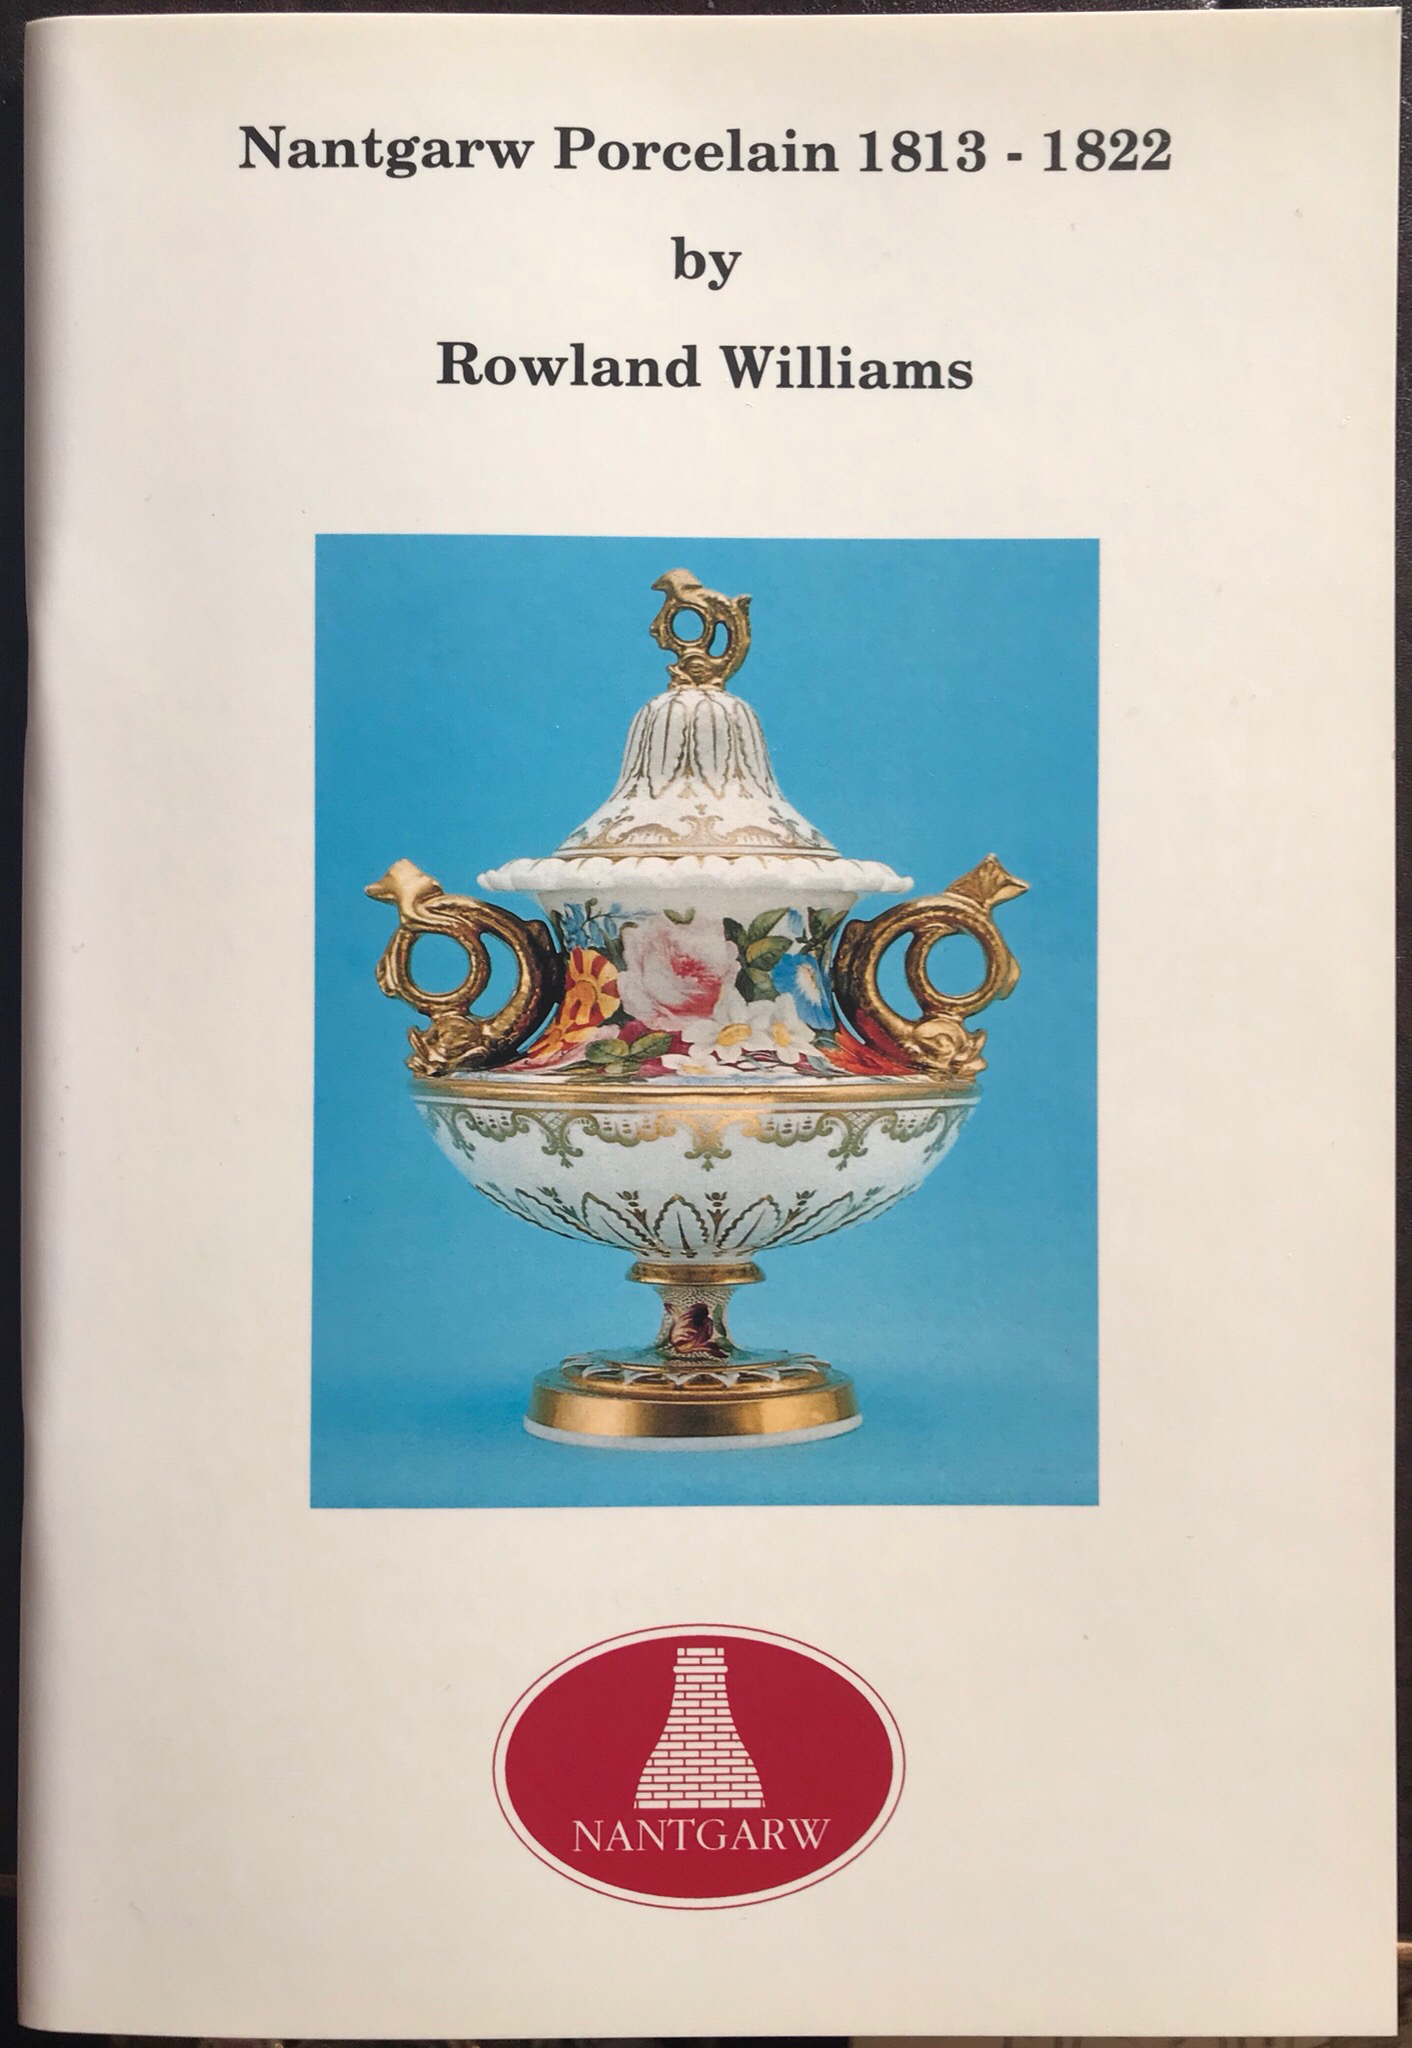 Nantgarw Porcelain by Rowland Williams 00001